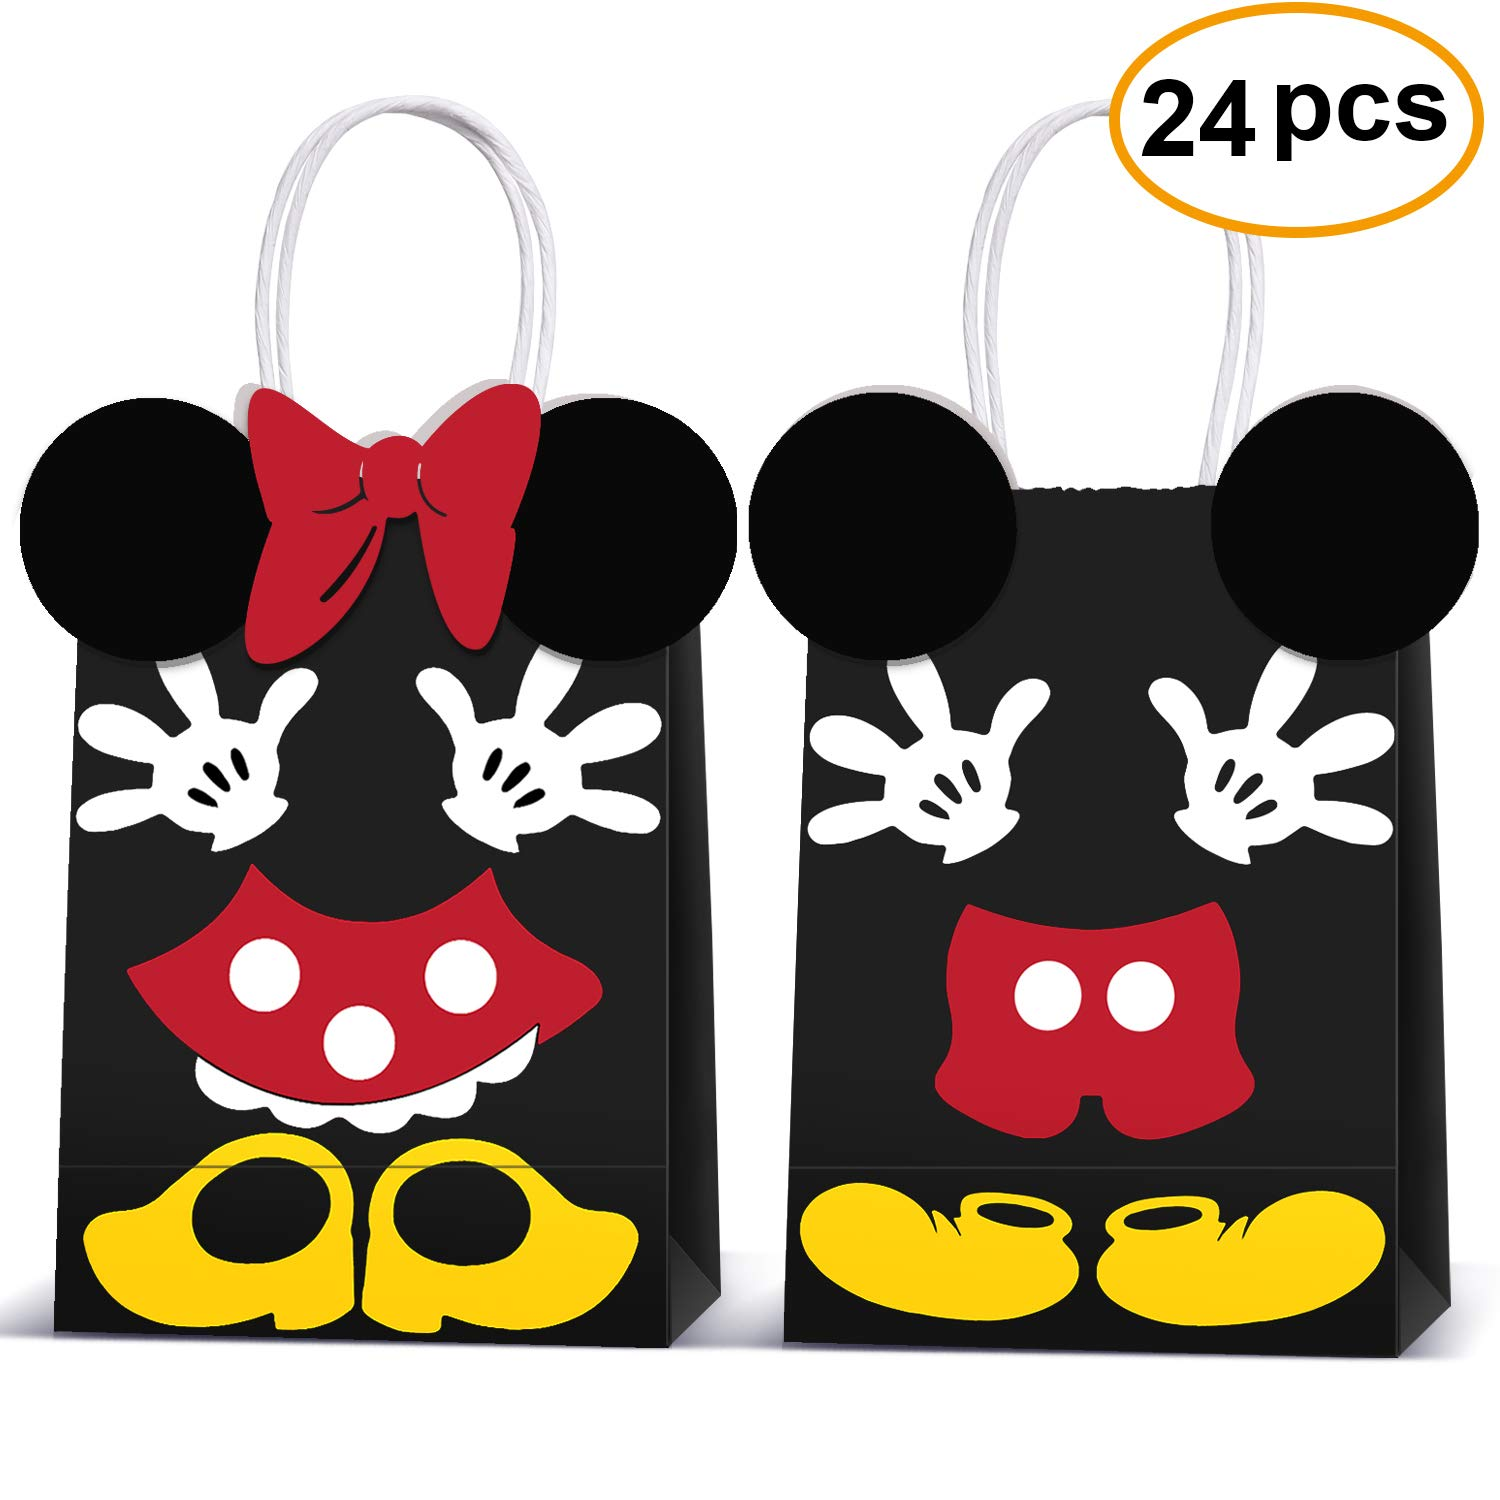 Minnie Mouse Party Supplies Bags -Micky Minnie Paper Treat Candy Gift Bags for Kids Birthday Micky Minnie Party Supplies -24 Piece by Rekcopu